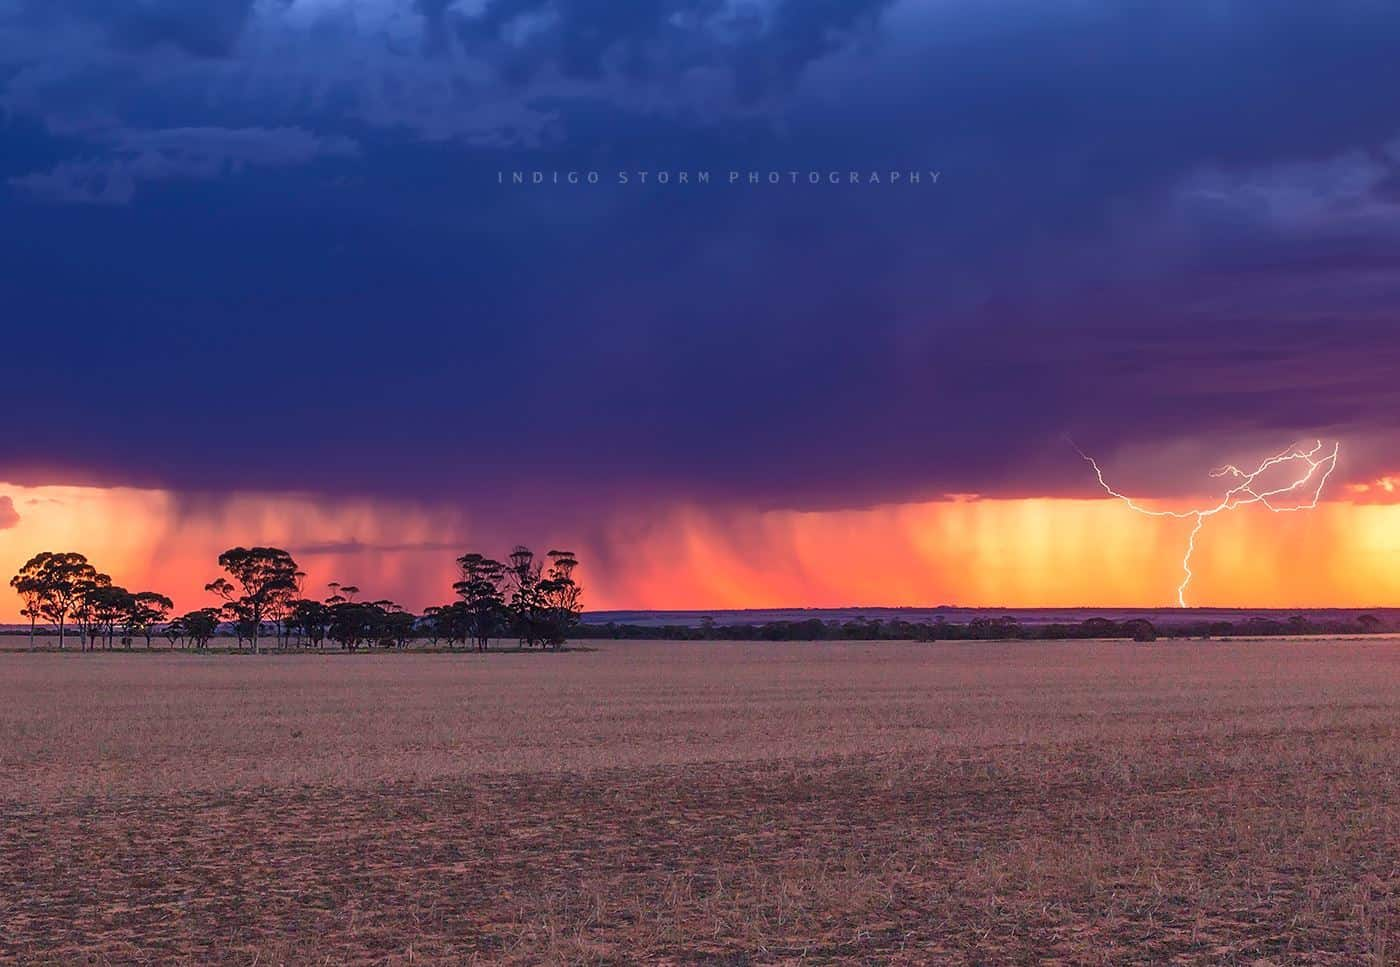 First storm for the season in the Central Wheatbelt of Western Australia. Captured just after sunset tonight 09/10/15.